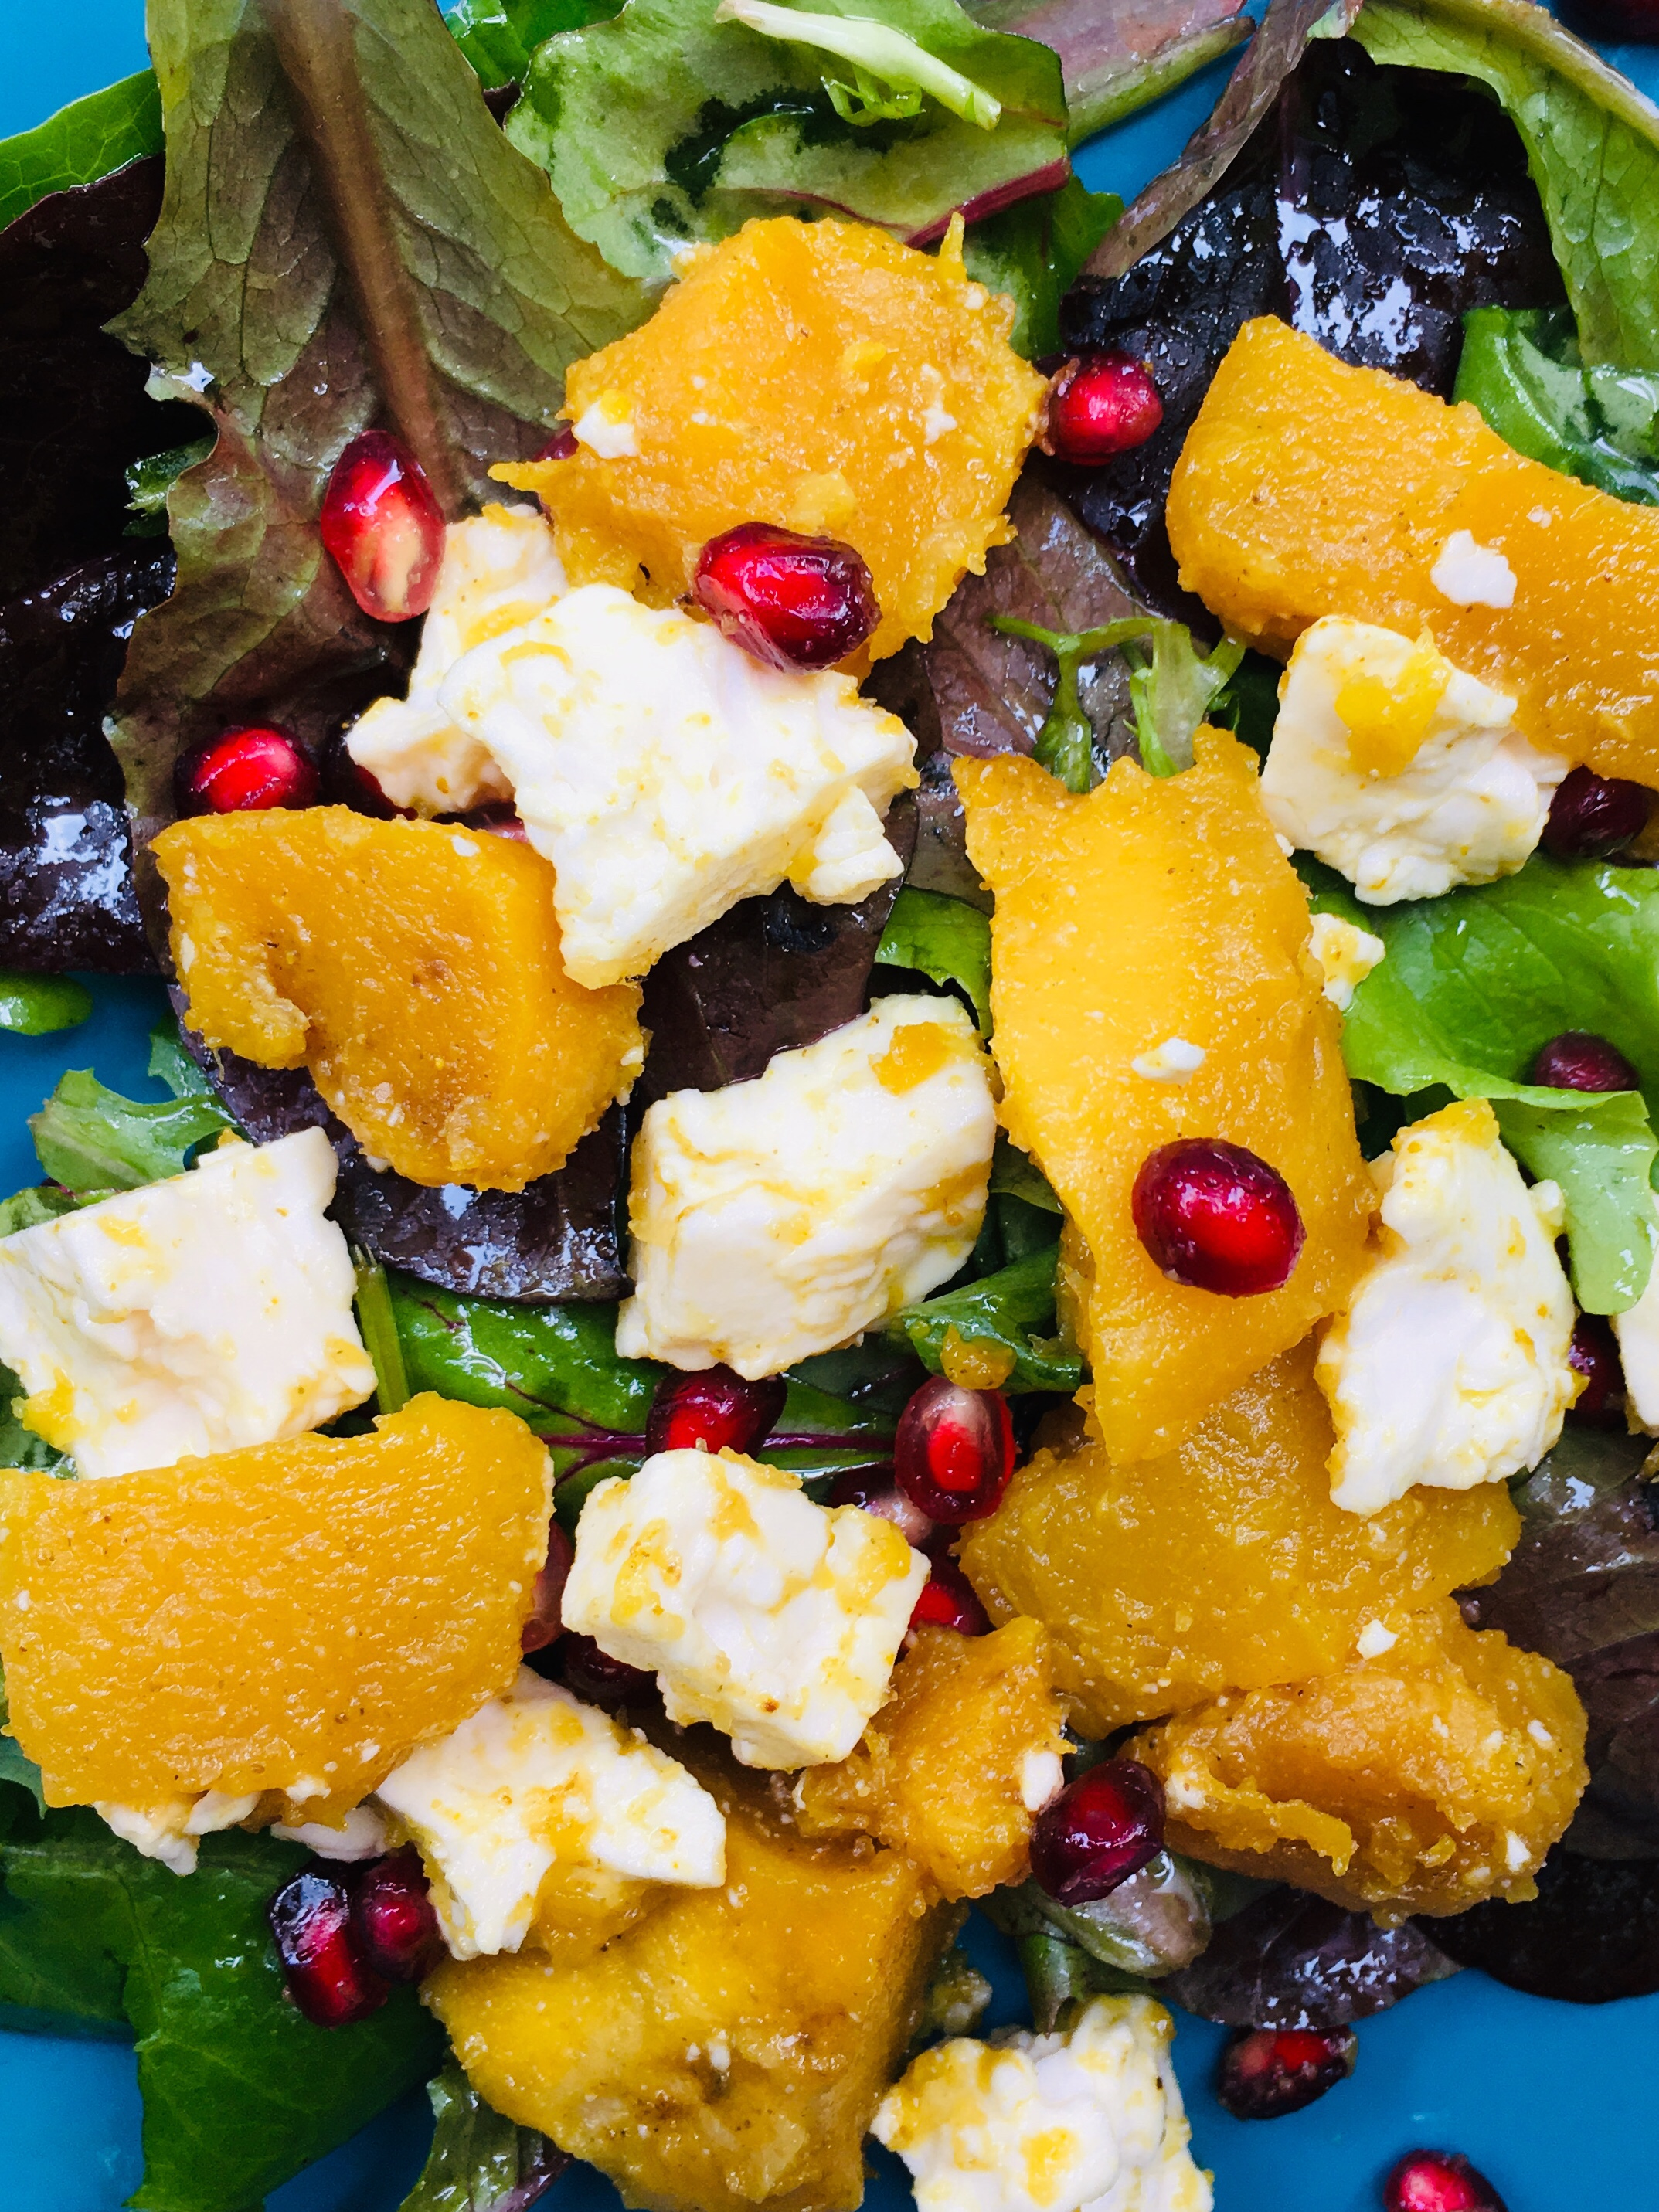 Squash with pomegranate and feta on dressed salad greens